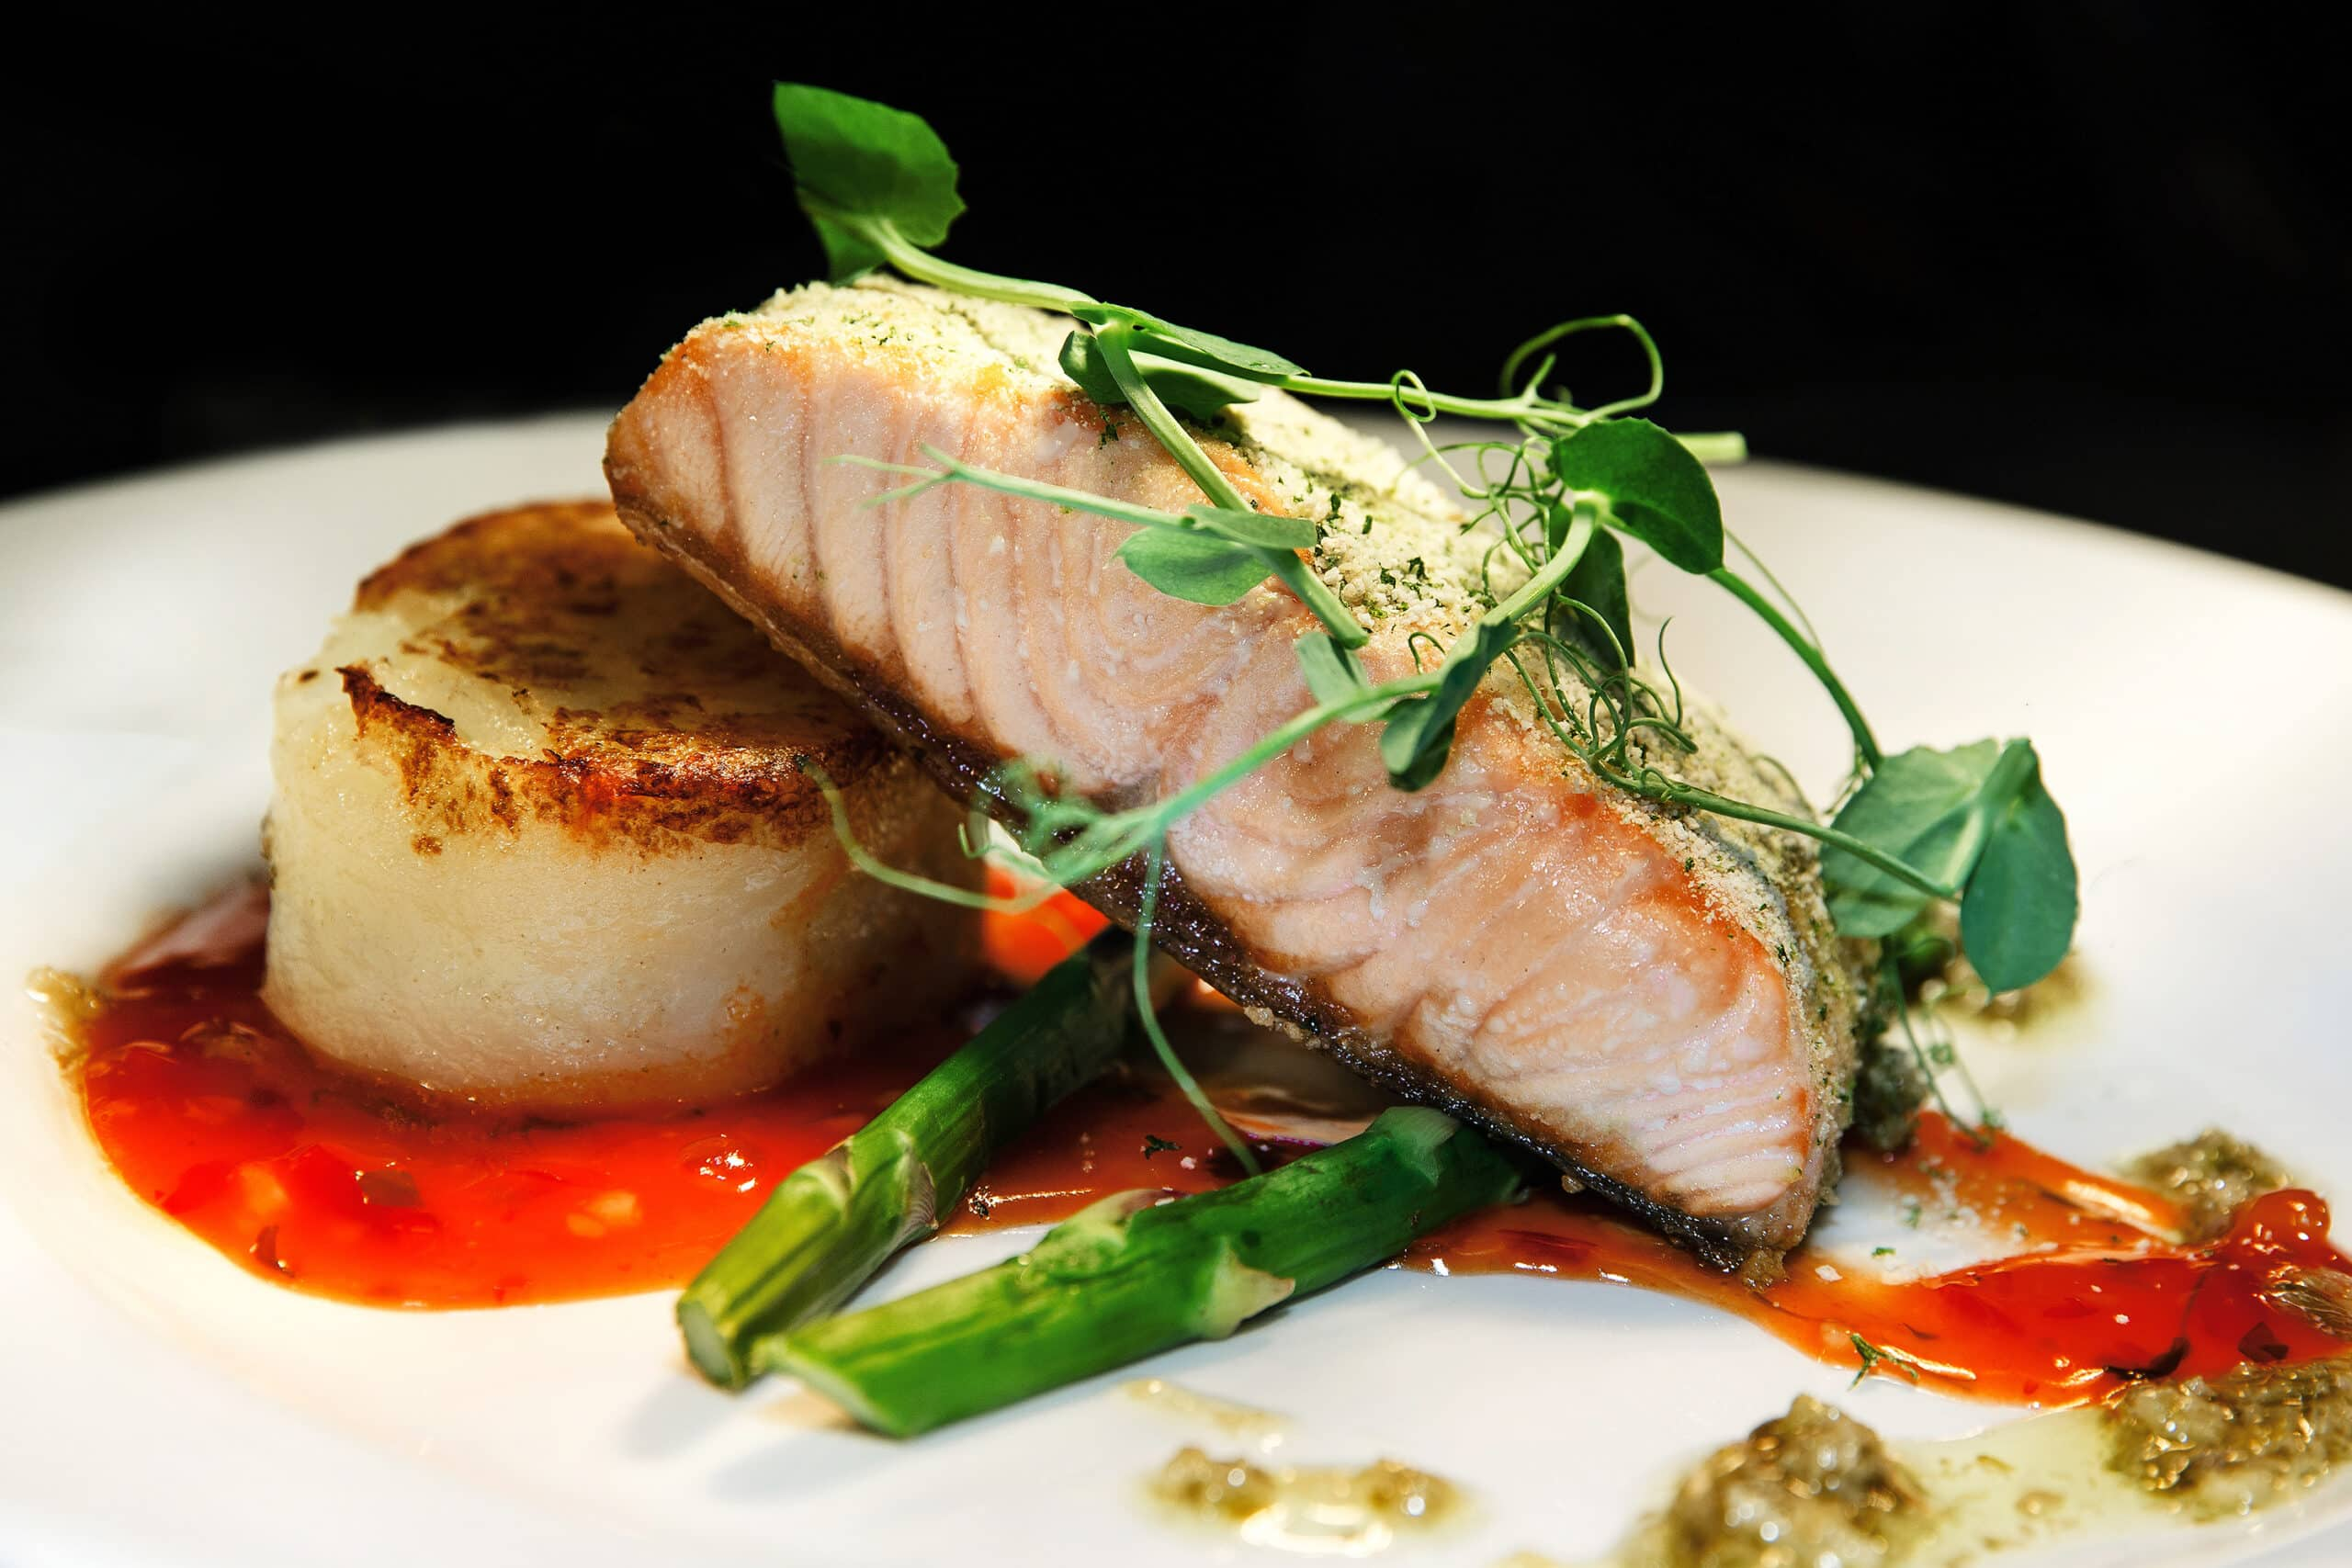 Food photographer based in manchester picture of a professional samon dish